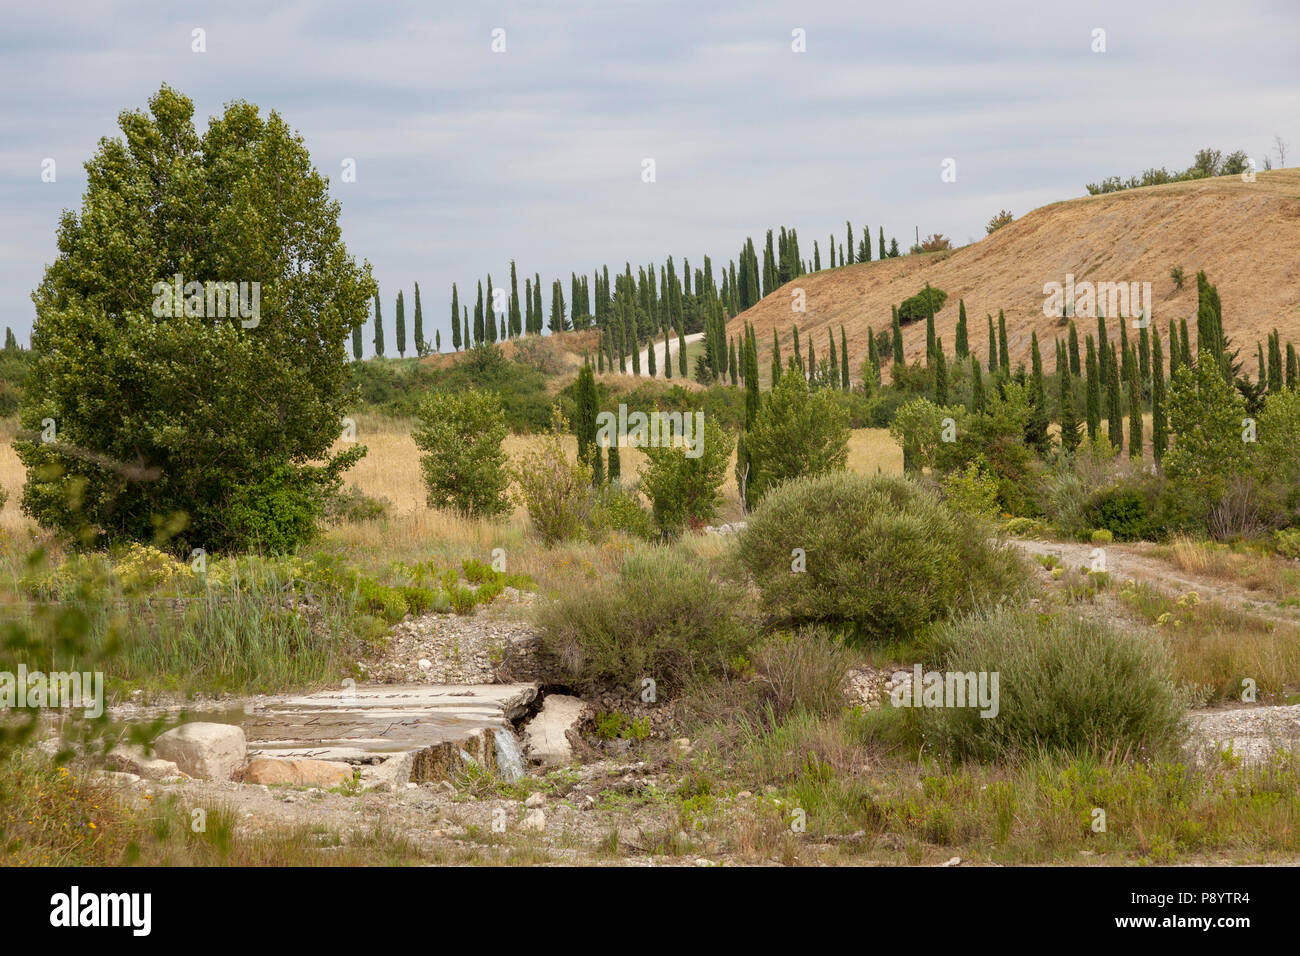 A typical scenery of cypresses in the vicinity of Montepulciano with the quite dried-up bed of a river (Tuscany - Italy). Paysage caractéristique de c - Stock Image